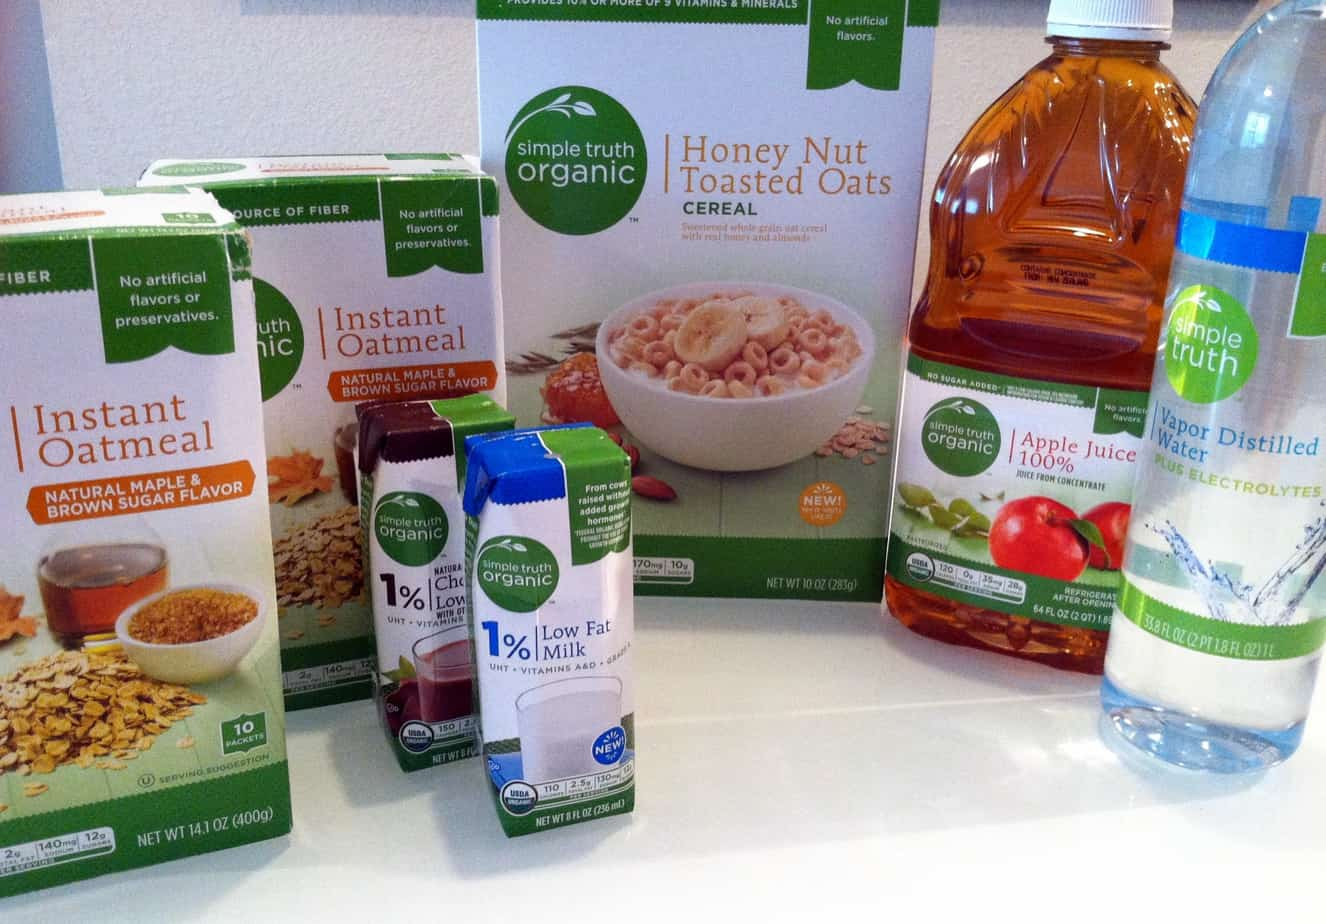 Simple Truth Organic Quinoa  Kroger's Simple Truth Brand GIVEAWAY